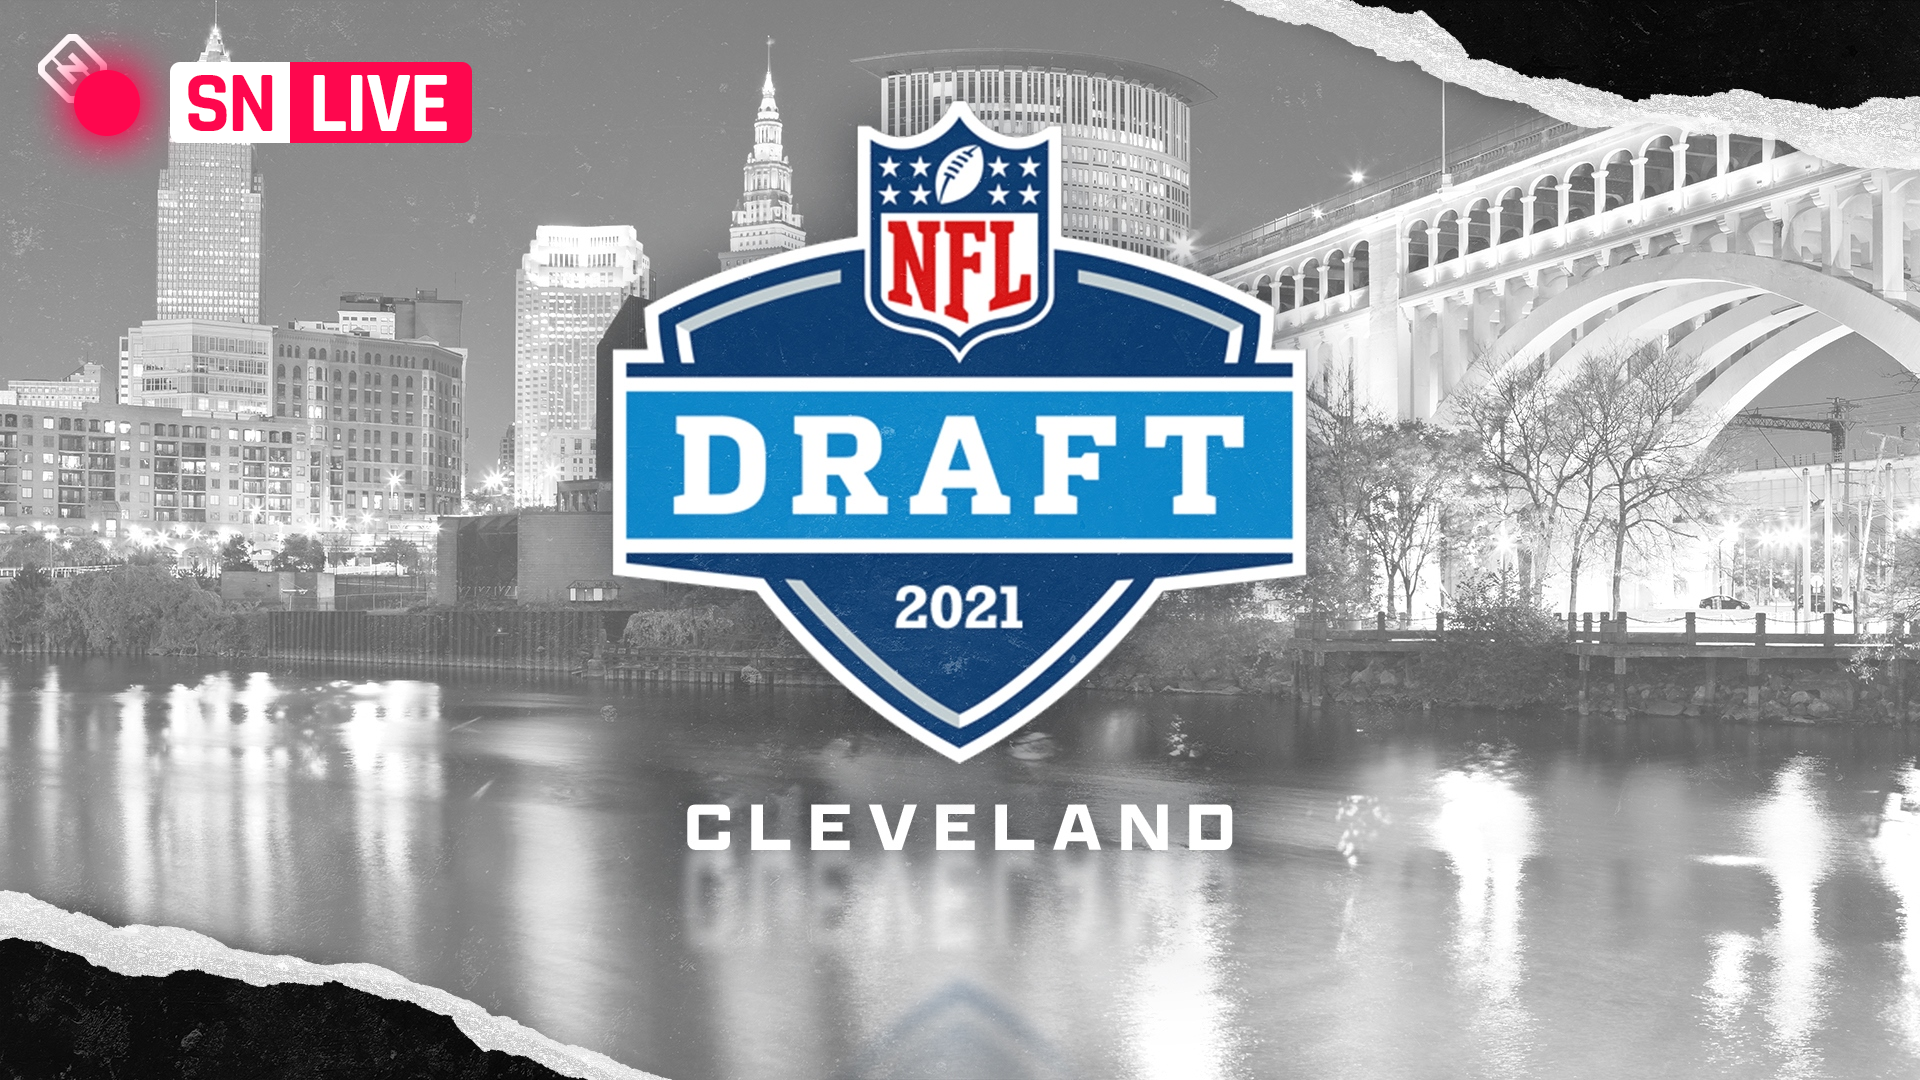 NFL Draft picks 2021: Live results, complete list of selections from Round 1